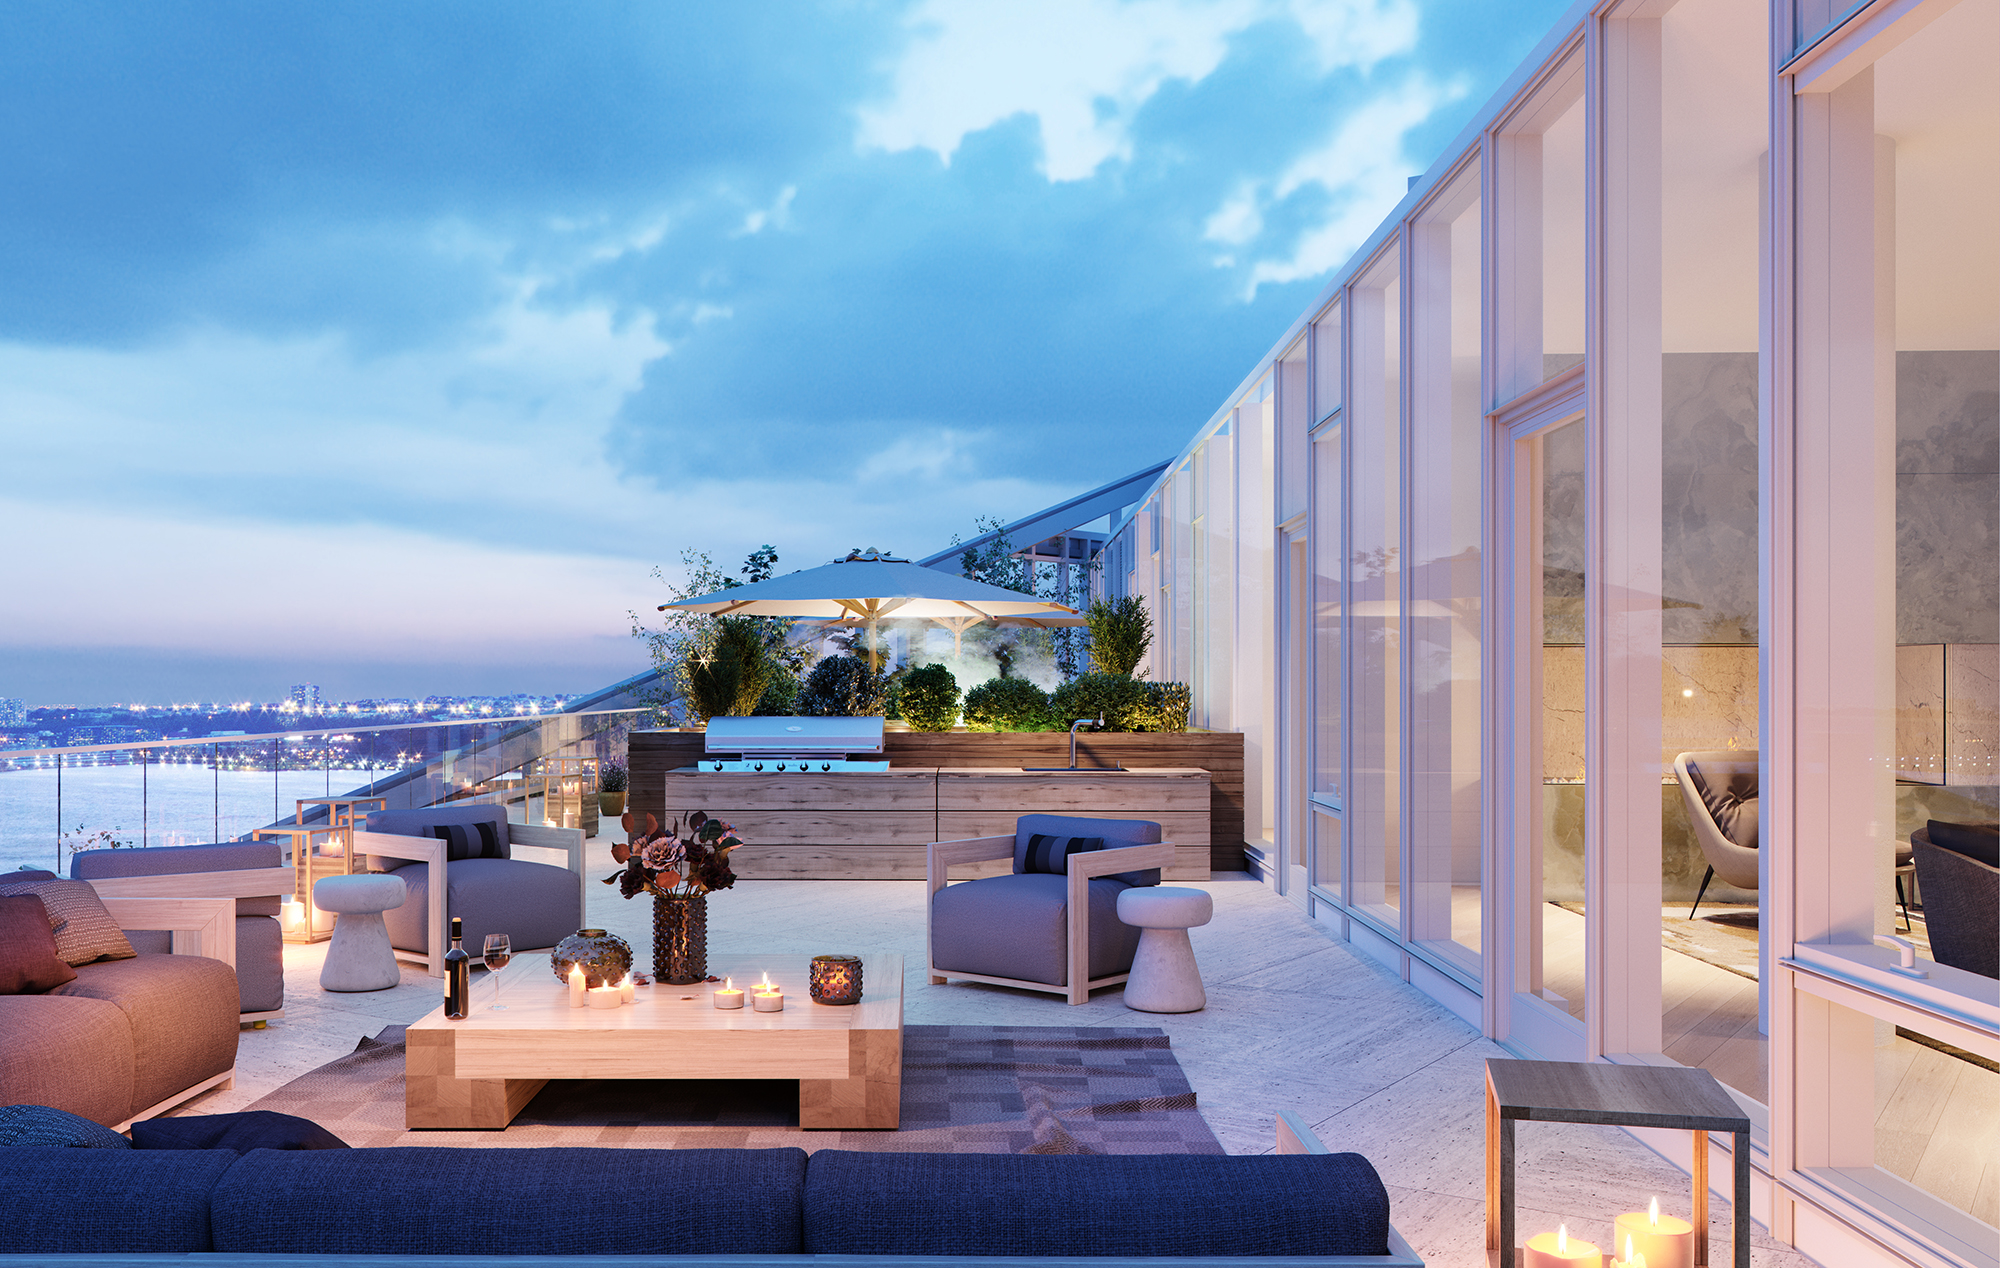 Views from Luxury Condo Penthouse Terrace